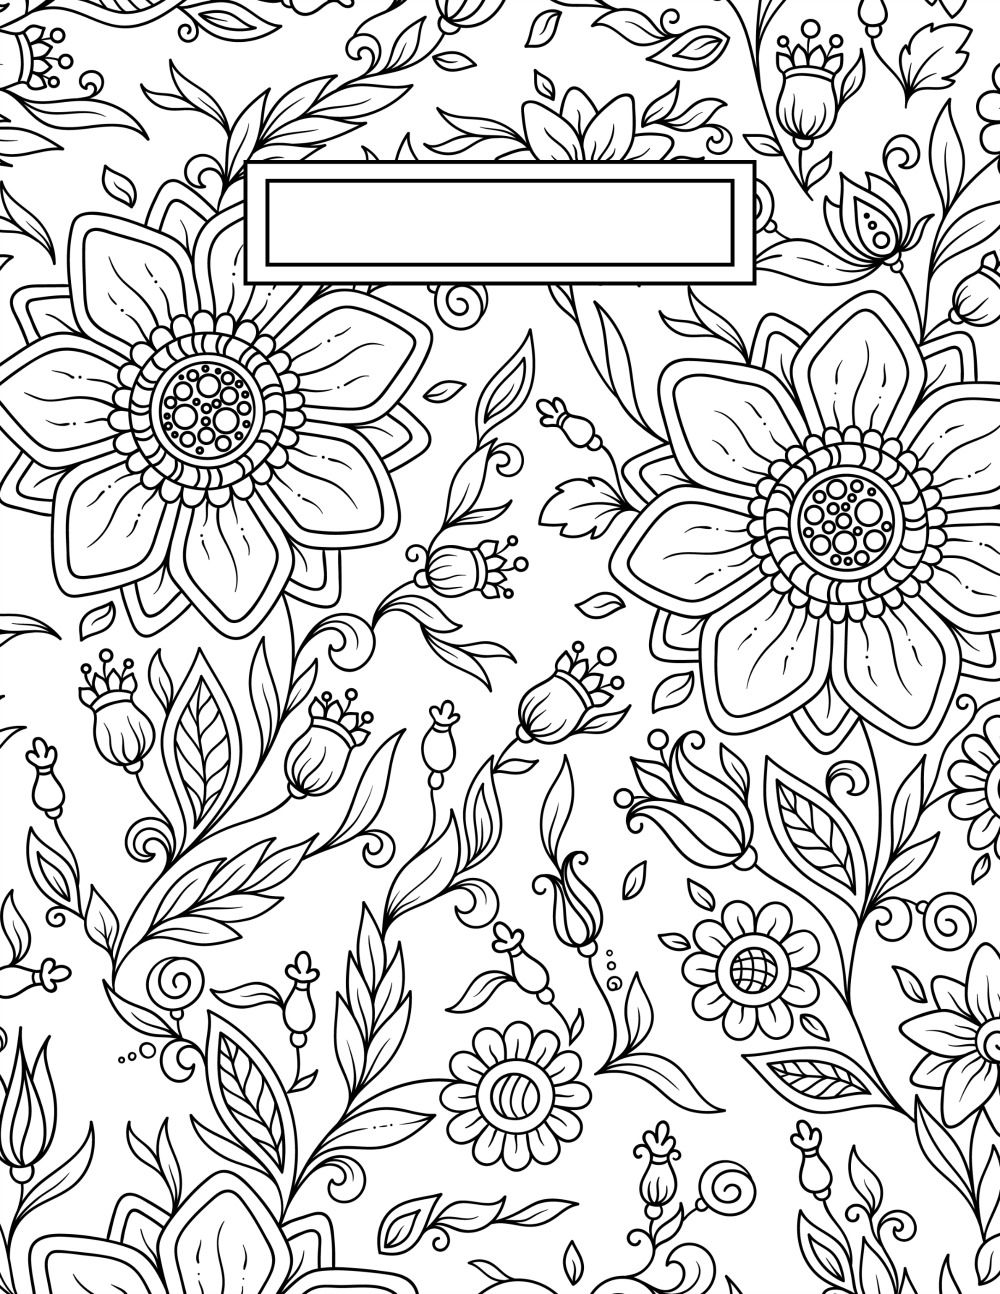 1000x1294 Back To School Binder Cover Adult Coloring Pages School Binder